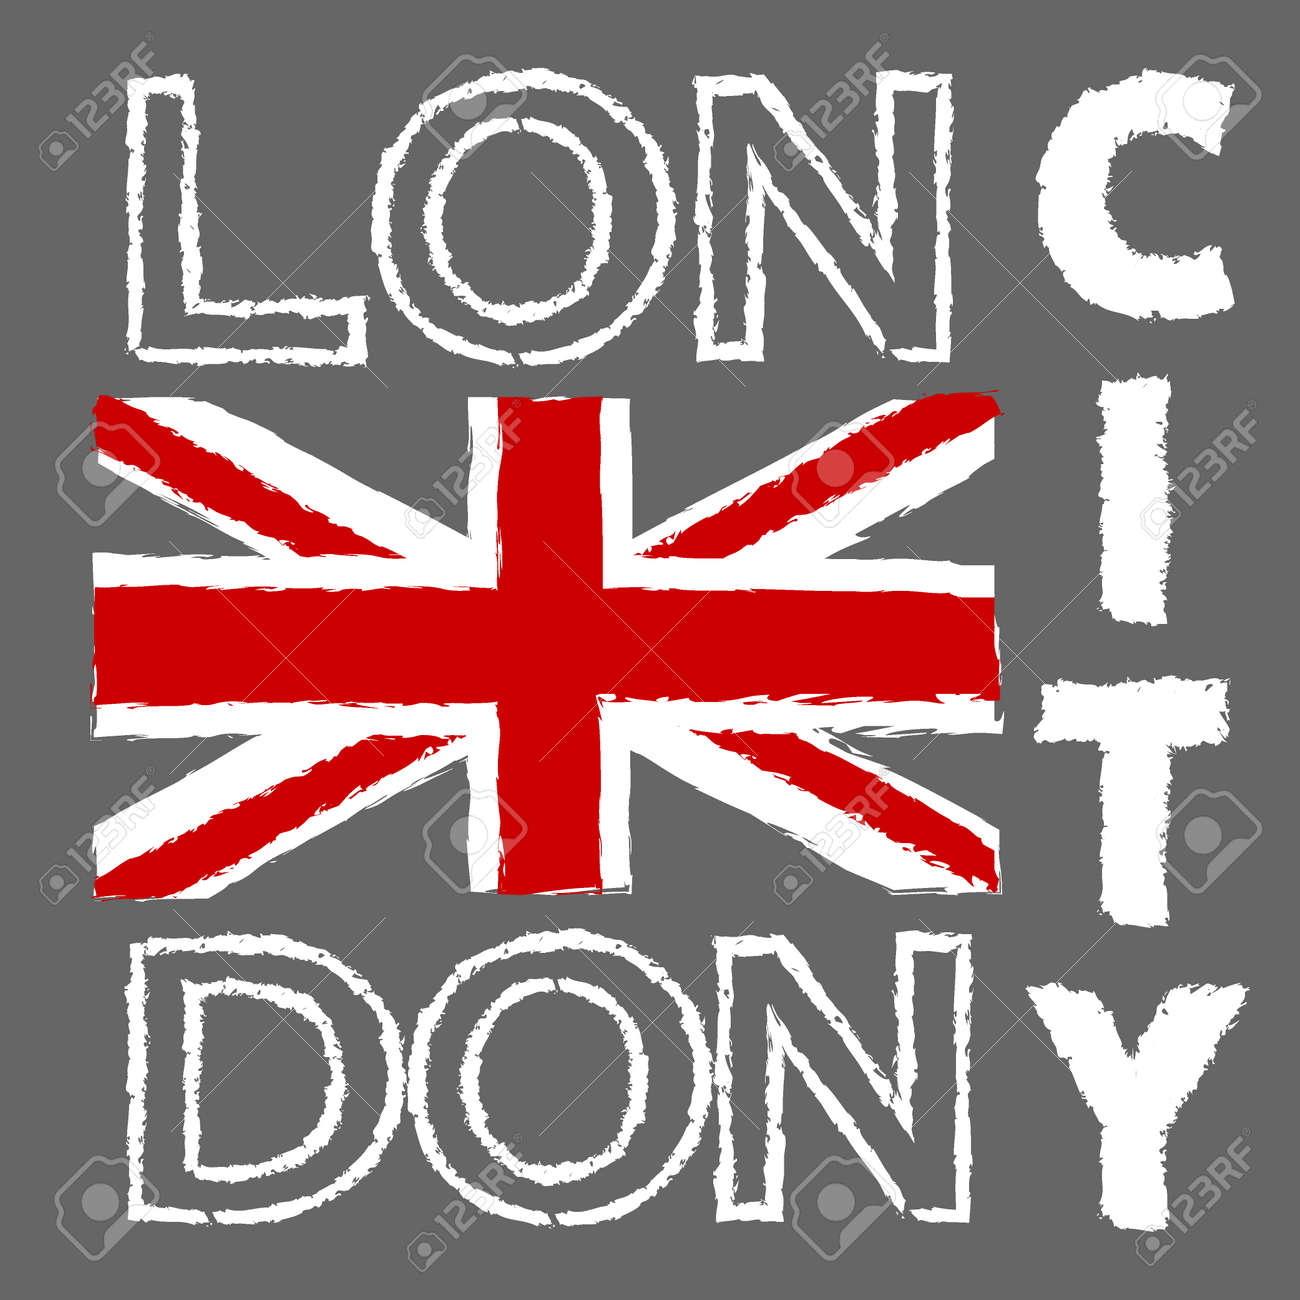 London City Typography Graphics British Flag Illustration Fashion Printing Design For Sportswear Apparel